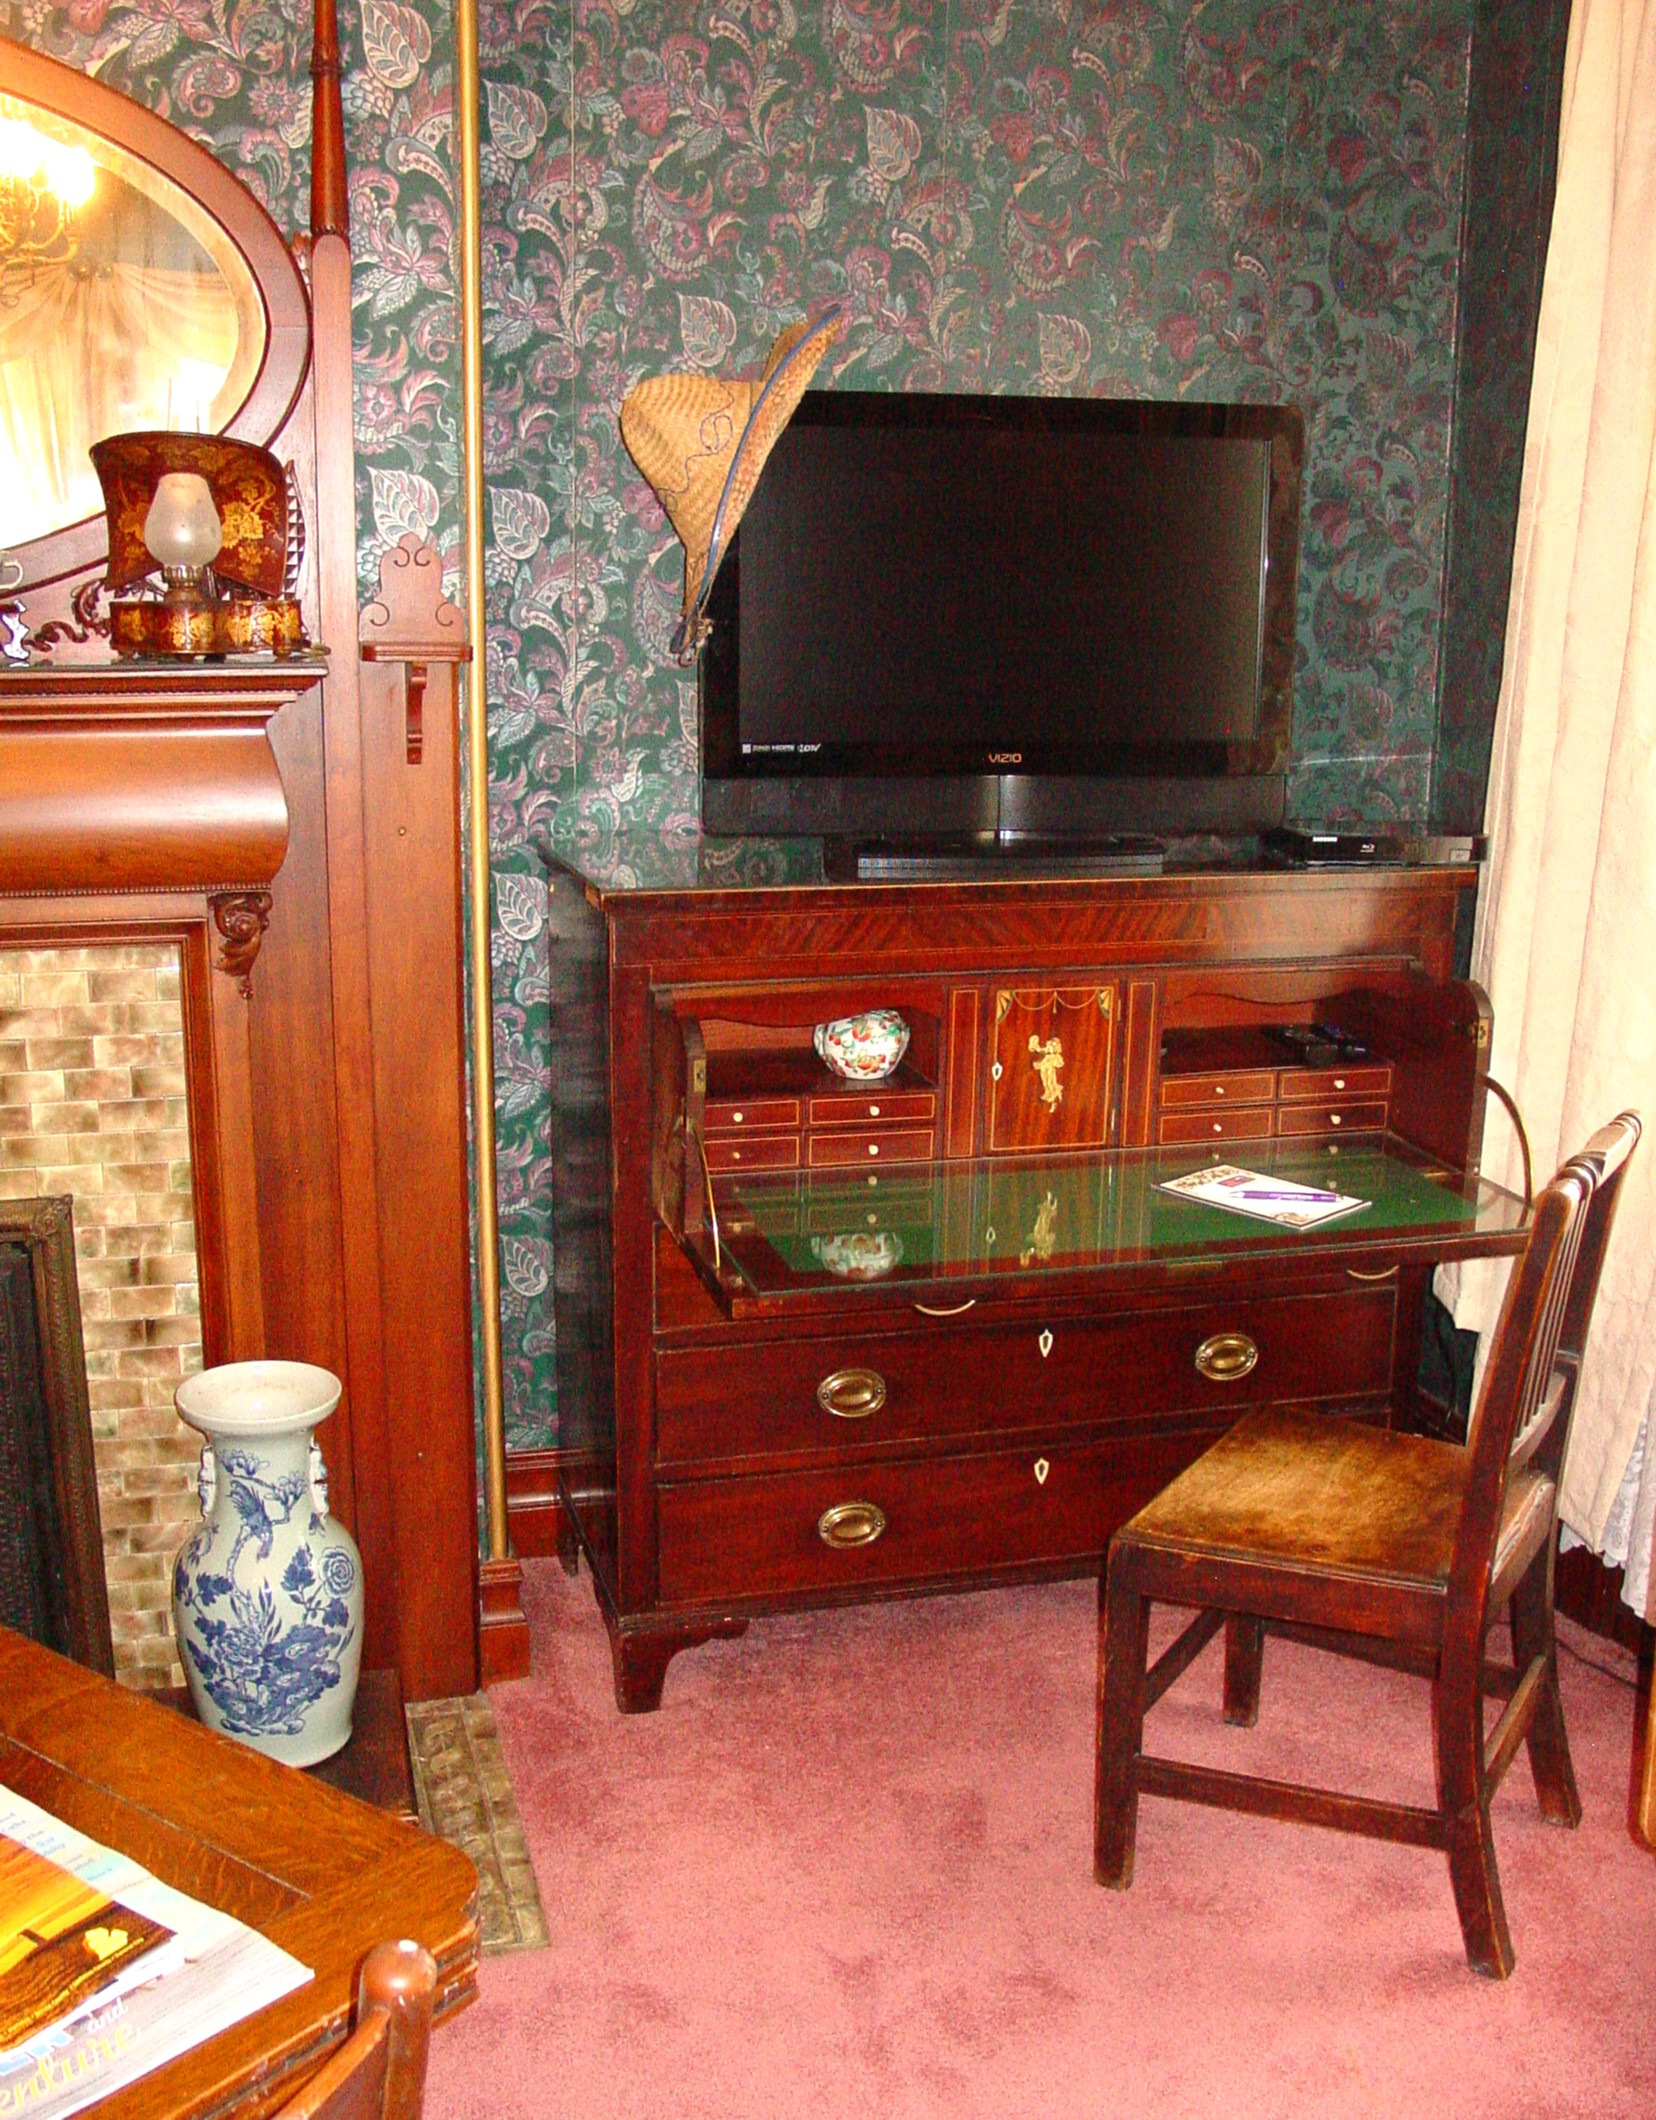 Sitting Room Desk & TV, Grand Suite